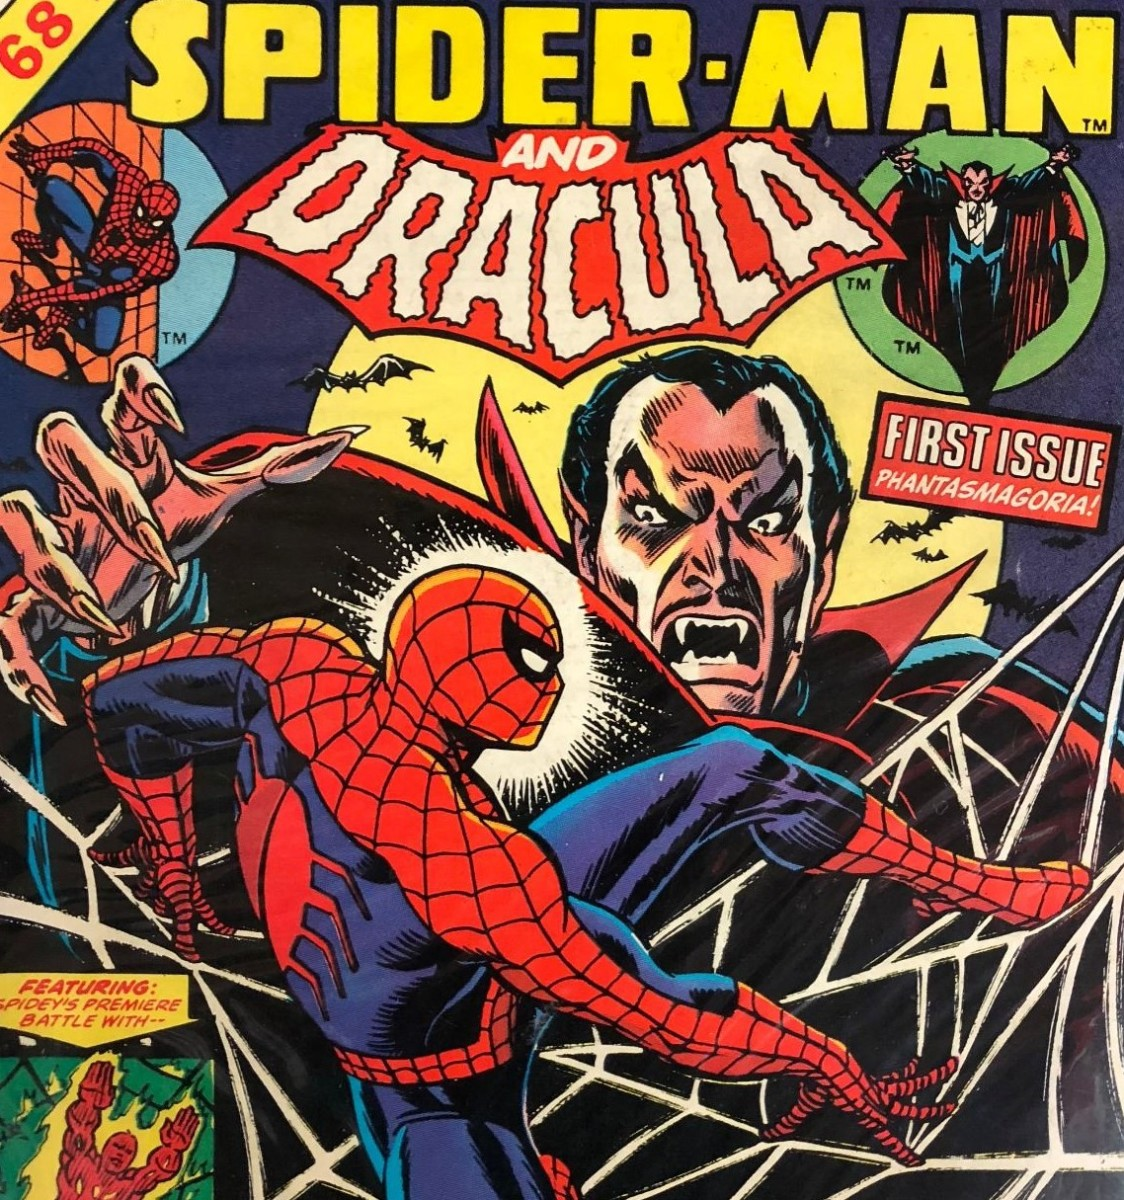 The cover of Giant-Size Spider-man and Dracula